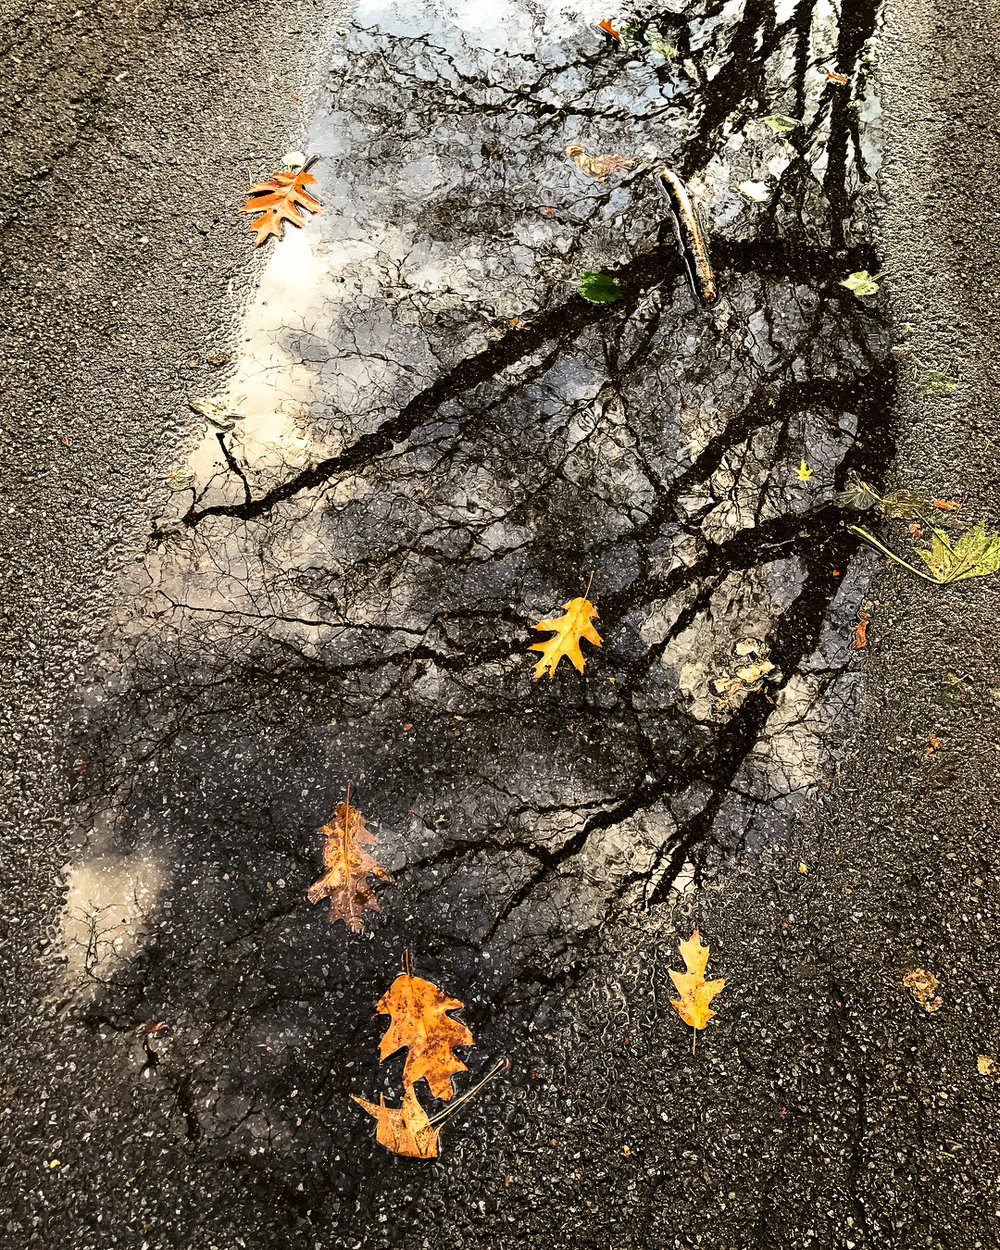 Scattered in this puddle are leaves from the surrounding Oaks, the Sweetgum (the folded five pointed leaf), and the Littleleaf Linden. Though I'm still learning how to identify the leaves of each tree, I'm not an expert yet on which leaves belong to which trees or how far they traveled. What I love most is that the leaves and the branches become one, even after the leaves have drifted down.